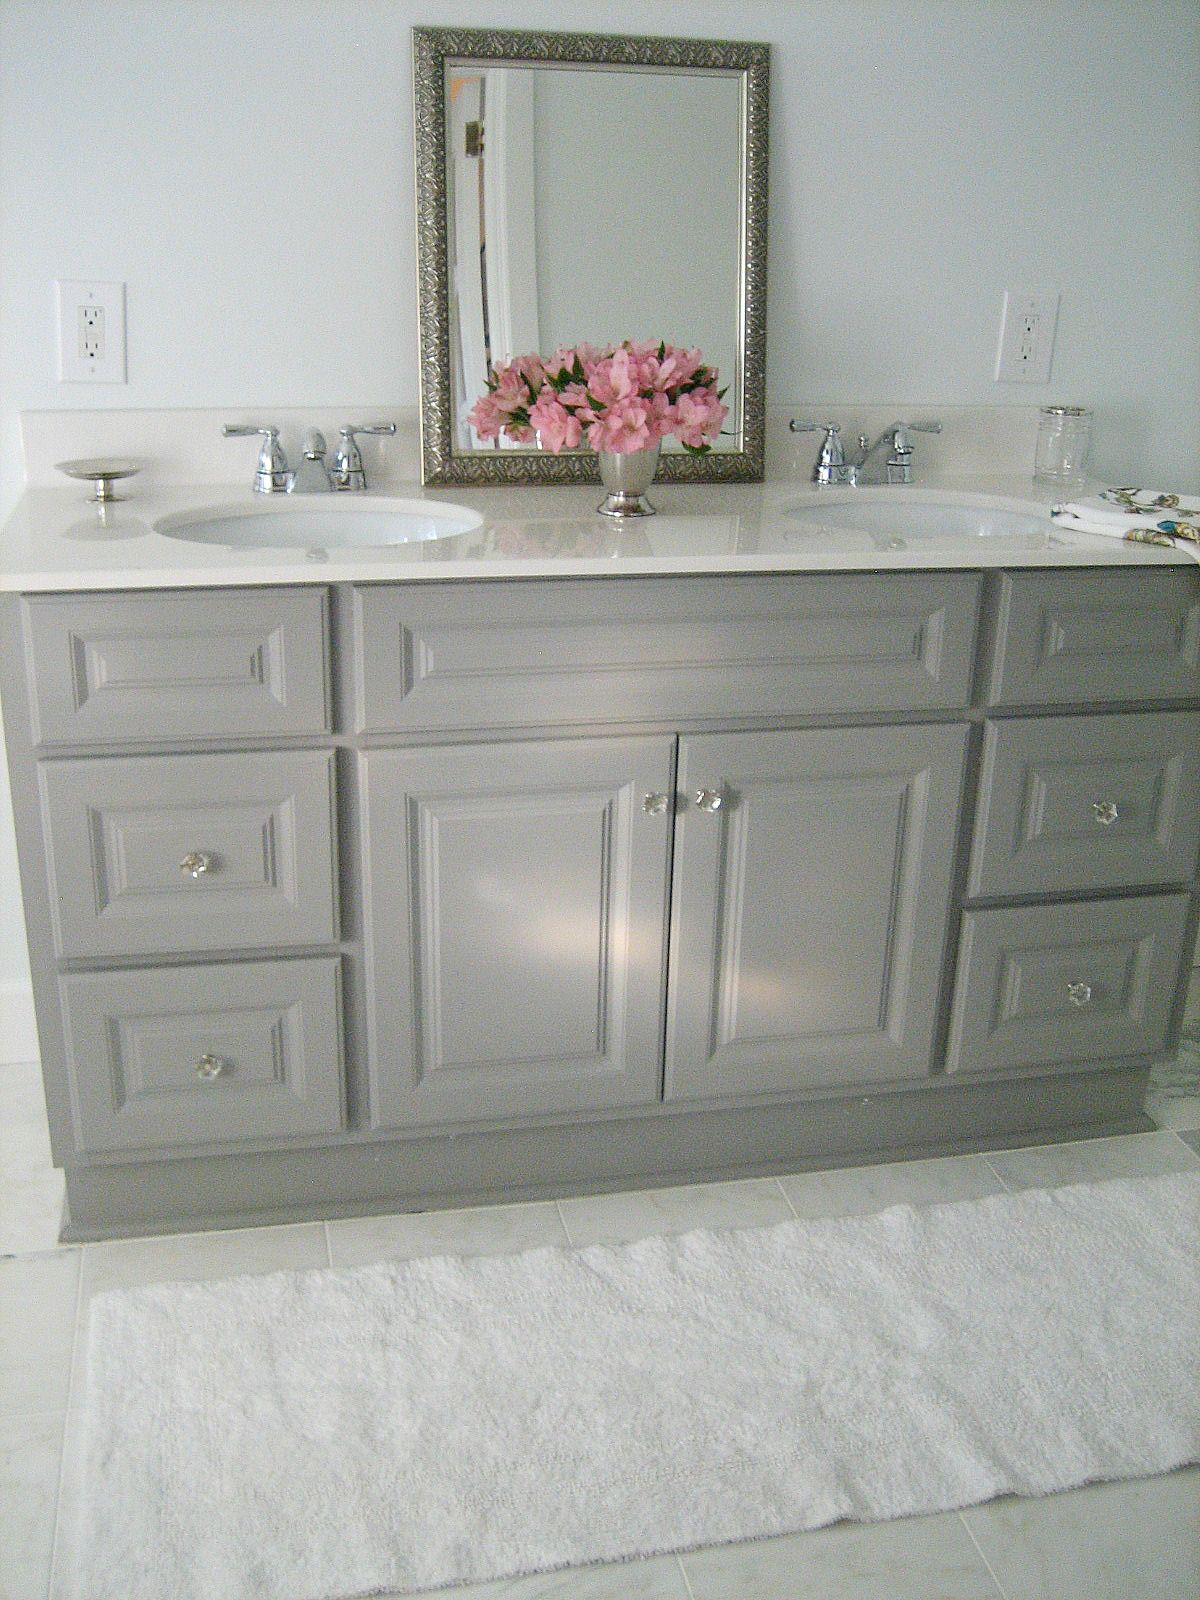 Ten June The Vanity Files Take One Hundred It S Done Grey Bathroom Vanity Girls Bathroom Home Design Decor